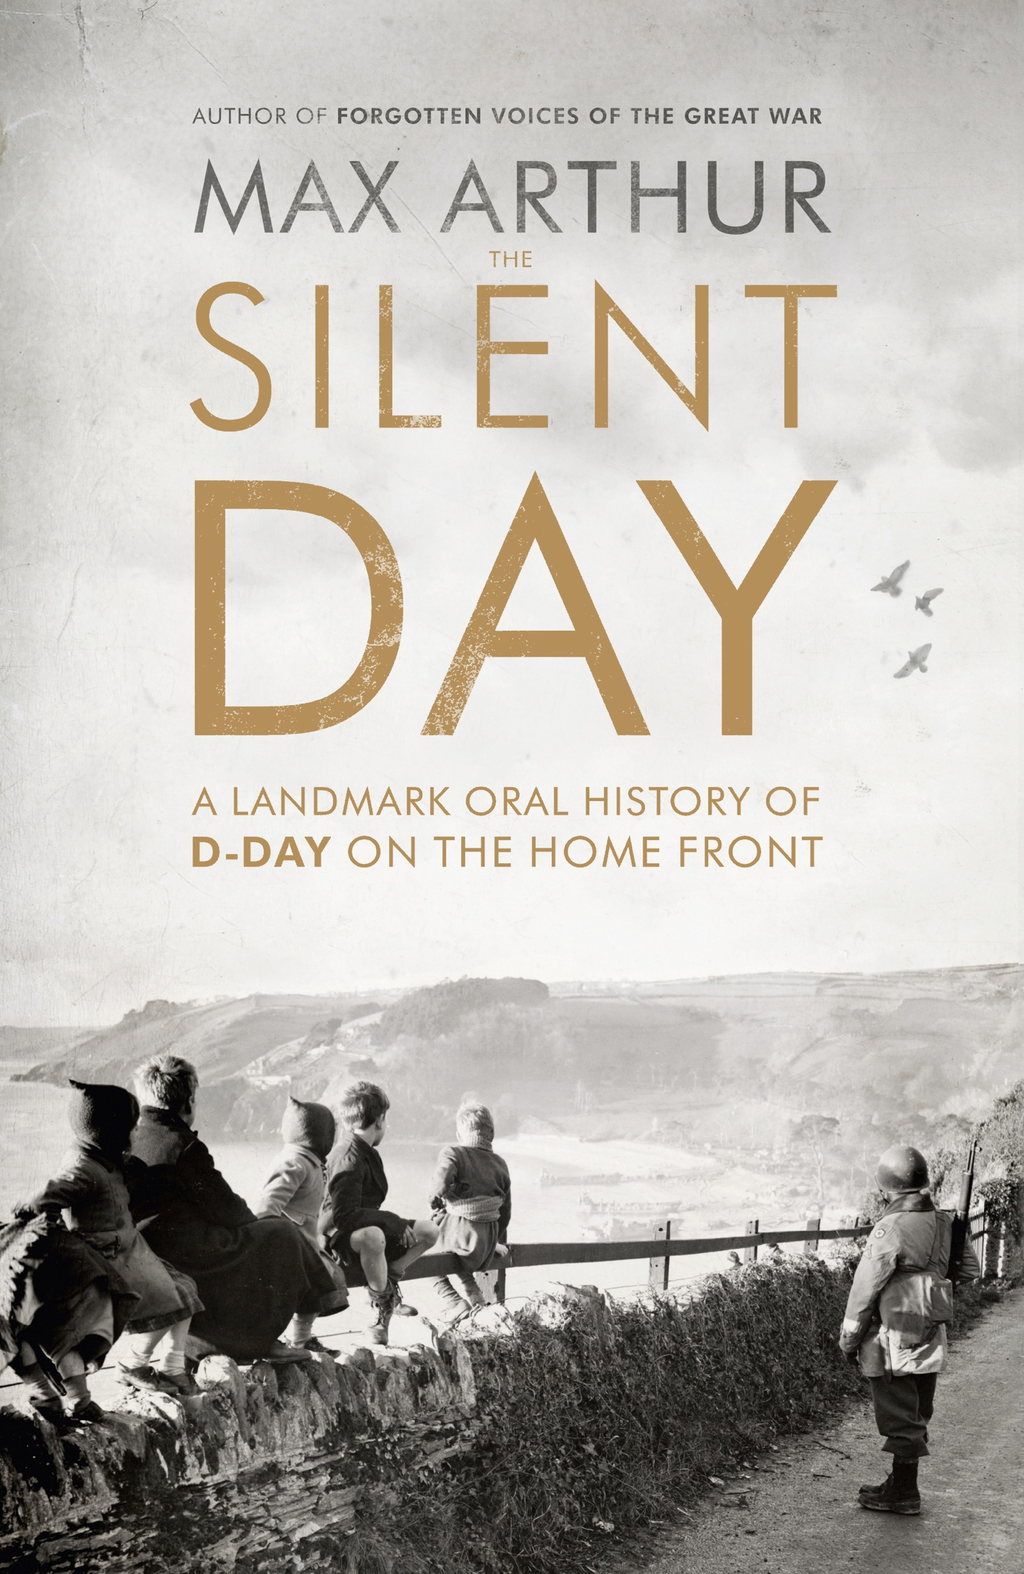 The Silent Day A Landmark Oral History of D-Day on the Home Front